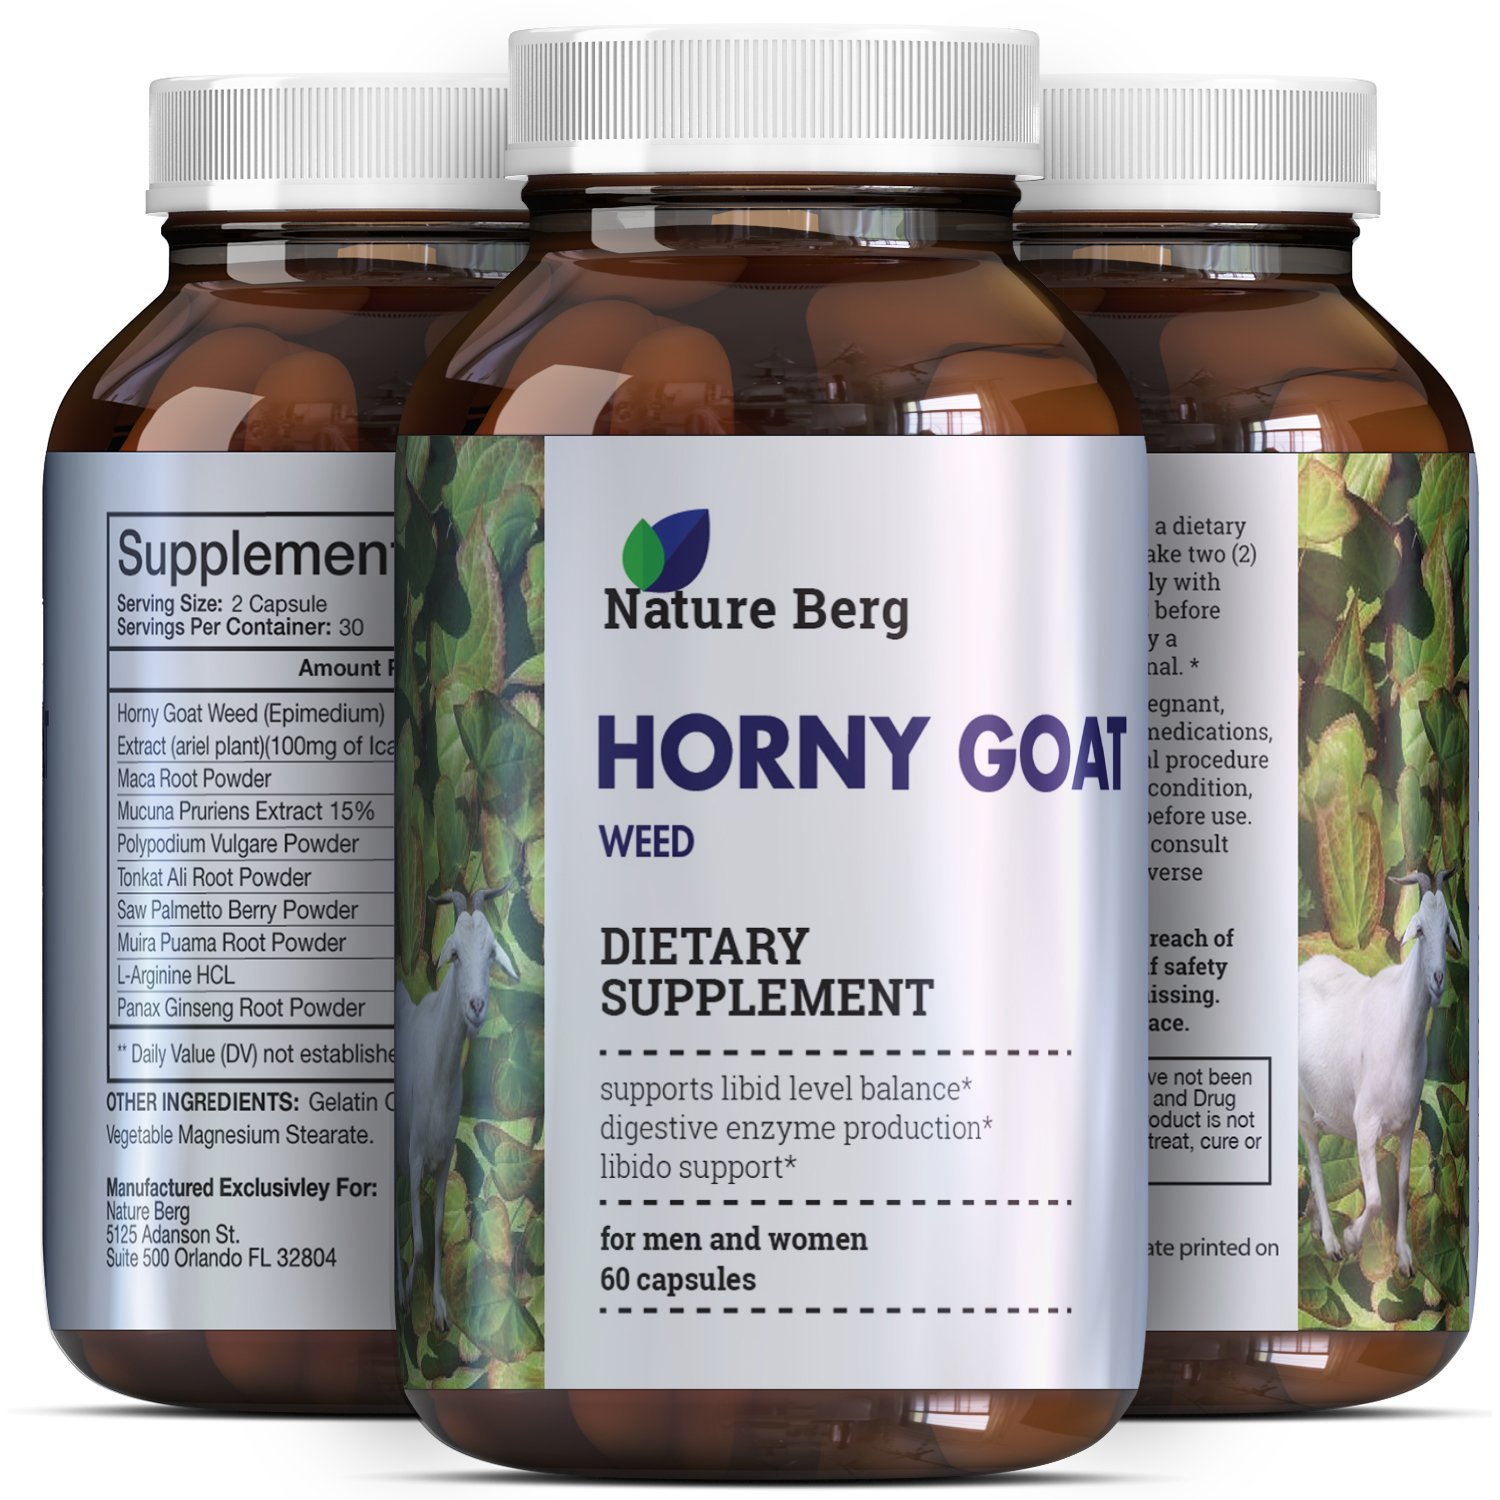 Buy herbal supplements 1000 count capsules - Amazon Com 1000 Mg All Natural Horny Goat Weed Extract Pills With Maca Root Powder Top Rated Male Female Enhancement Supplement Pure Libido Enhancer